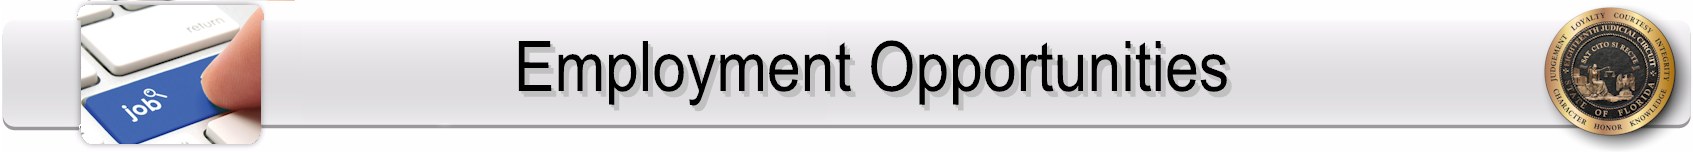 Employment Opportunities Page Banner